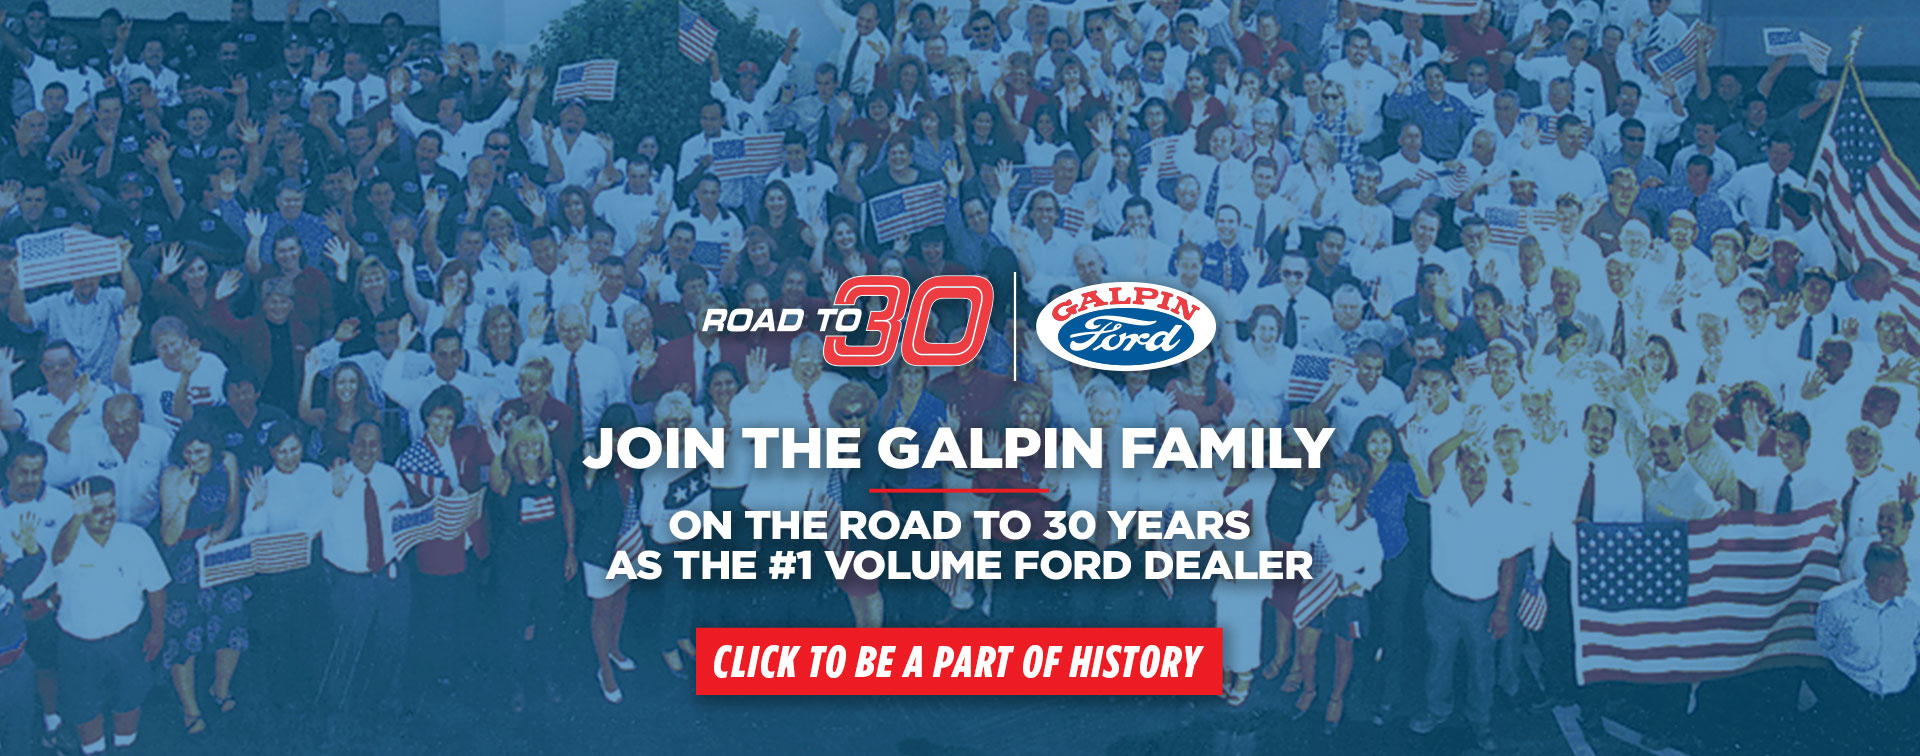 Galpin Ford: New & Used Ford Dealership Los Angeles, CA